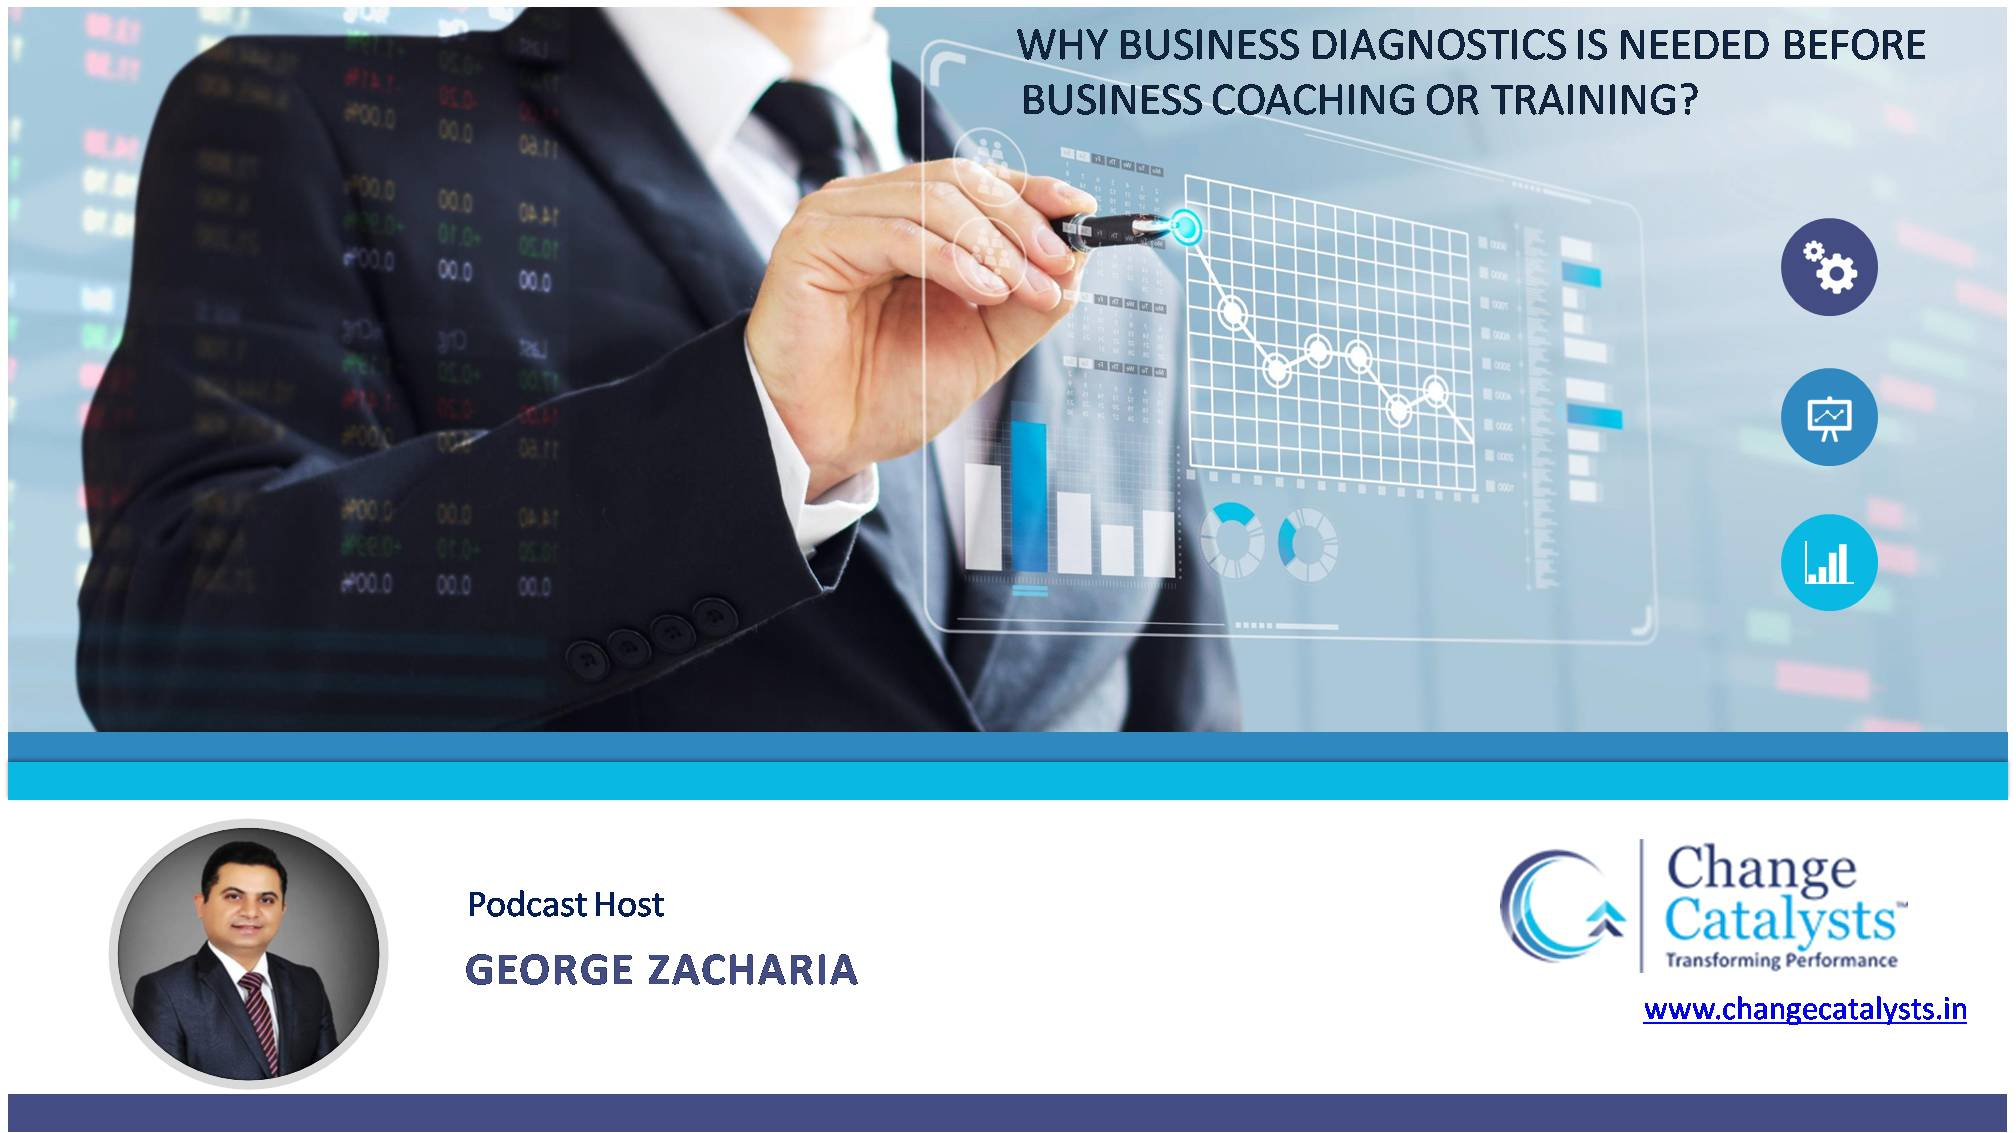 Business Diagnostics before Business Coaching